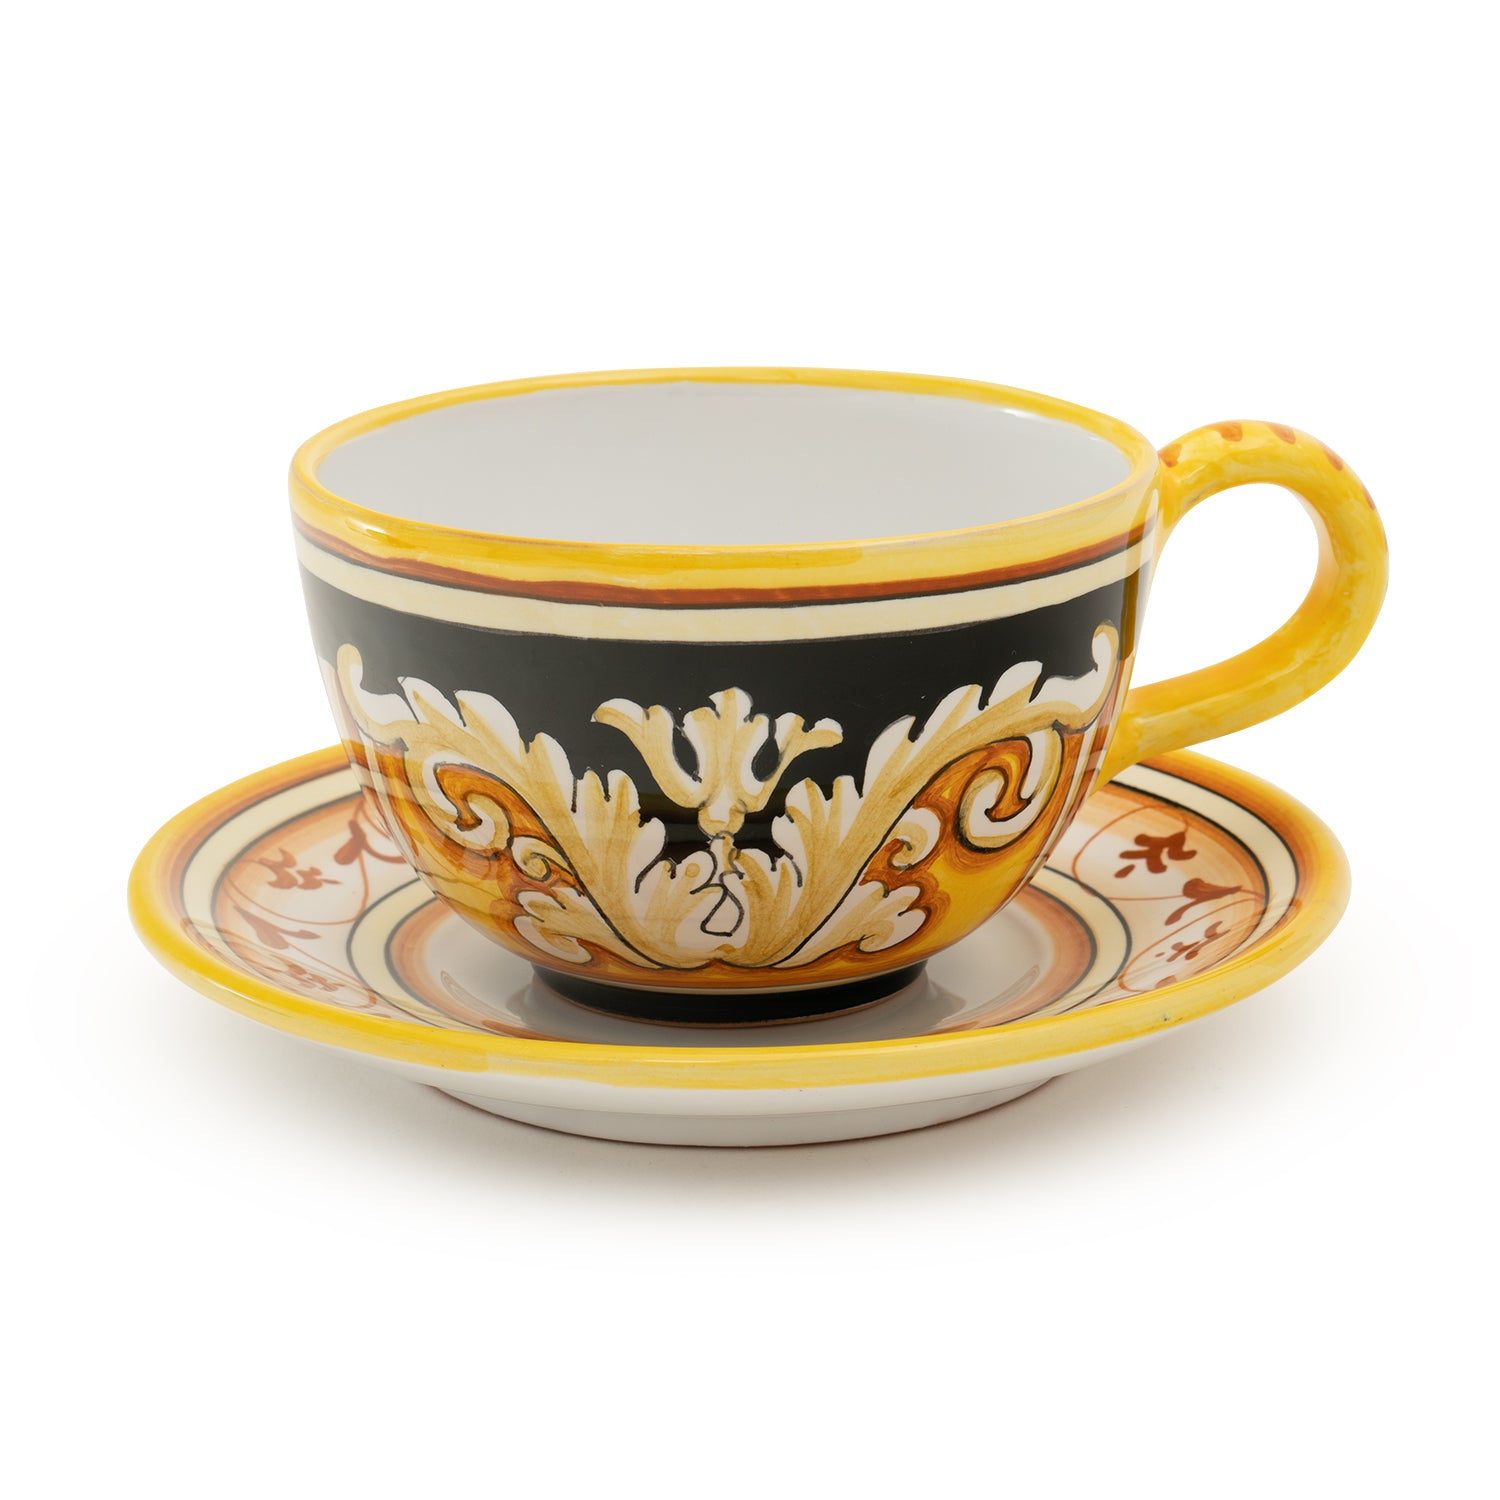 Pia Nero e Oro Latte Cup and Saucer, Round